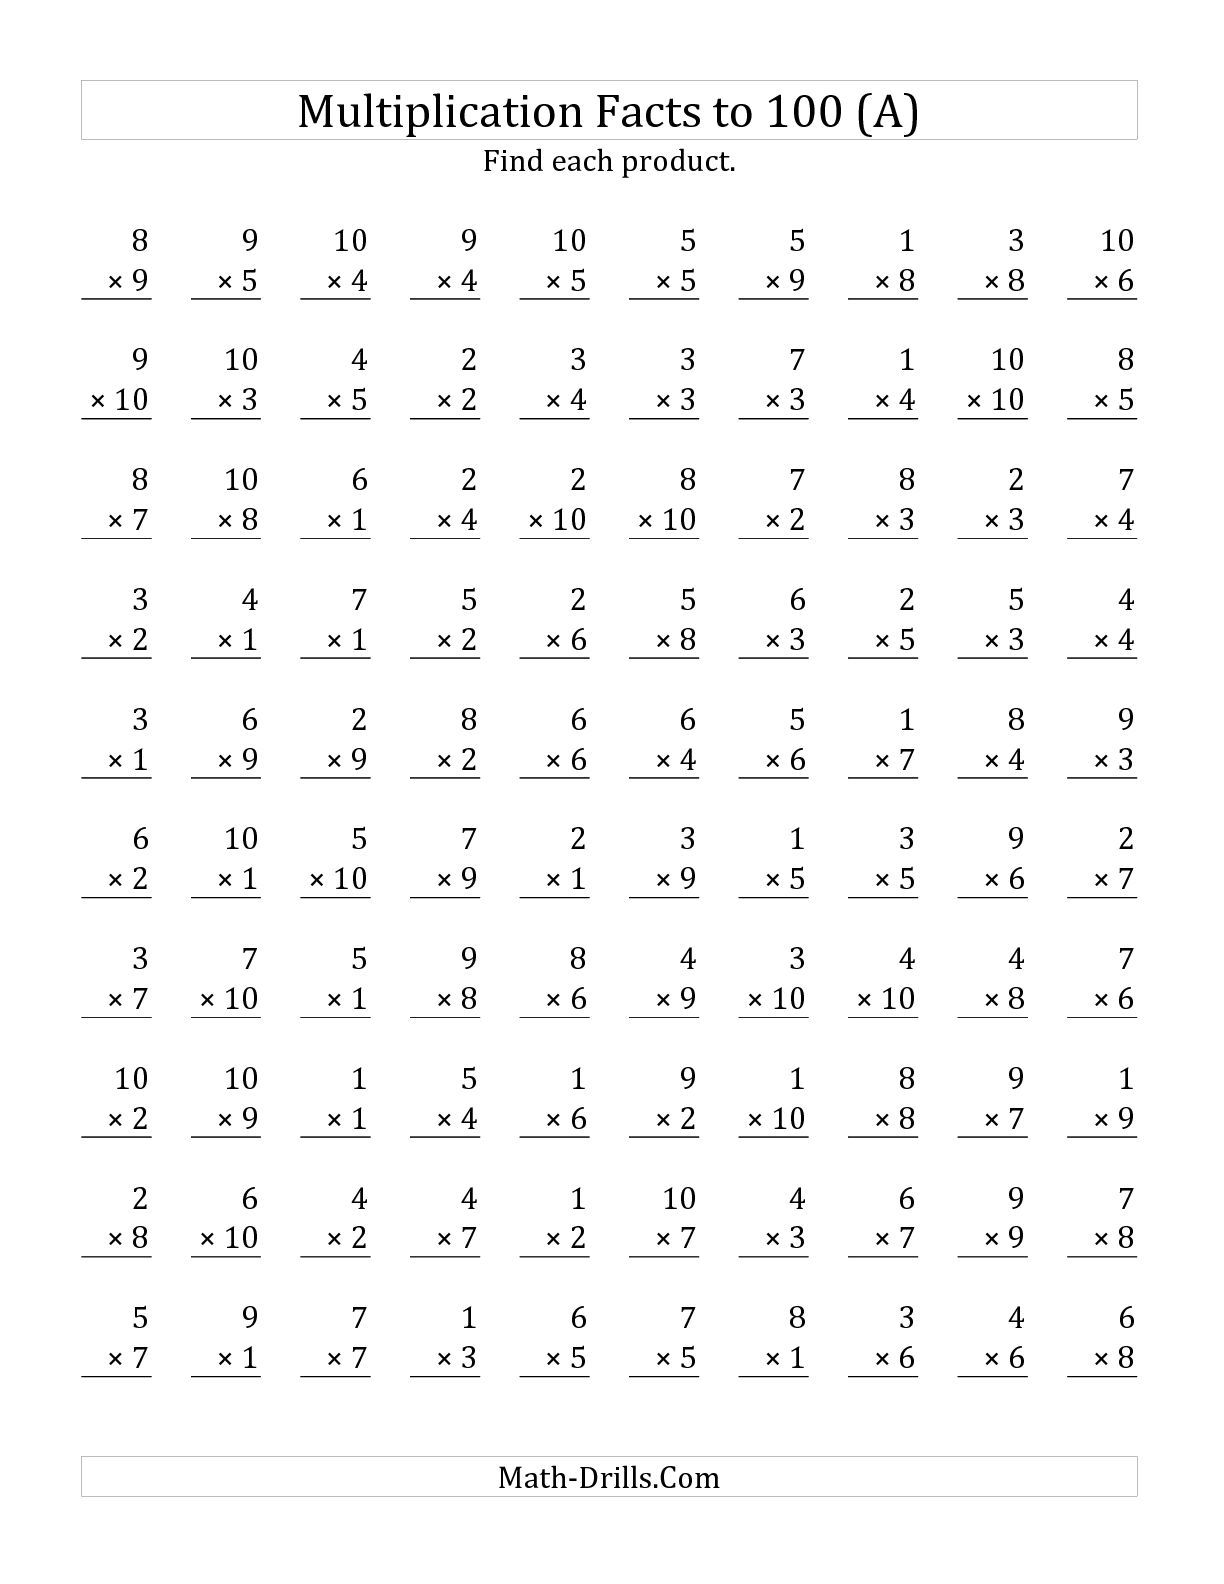 Worksheets Multiplication Worksheets Printable the multiplication facts to 100 no zeros a math worksheet from facts